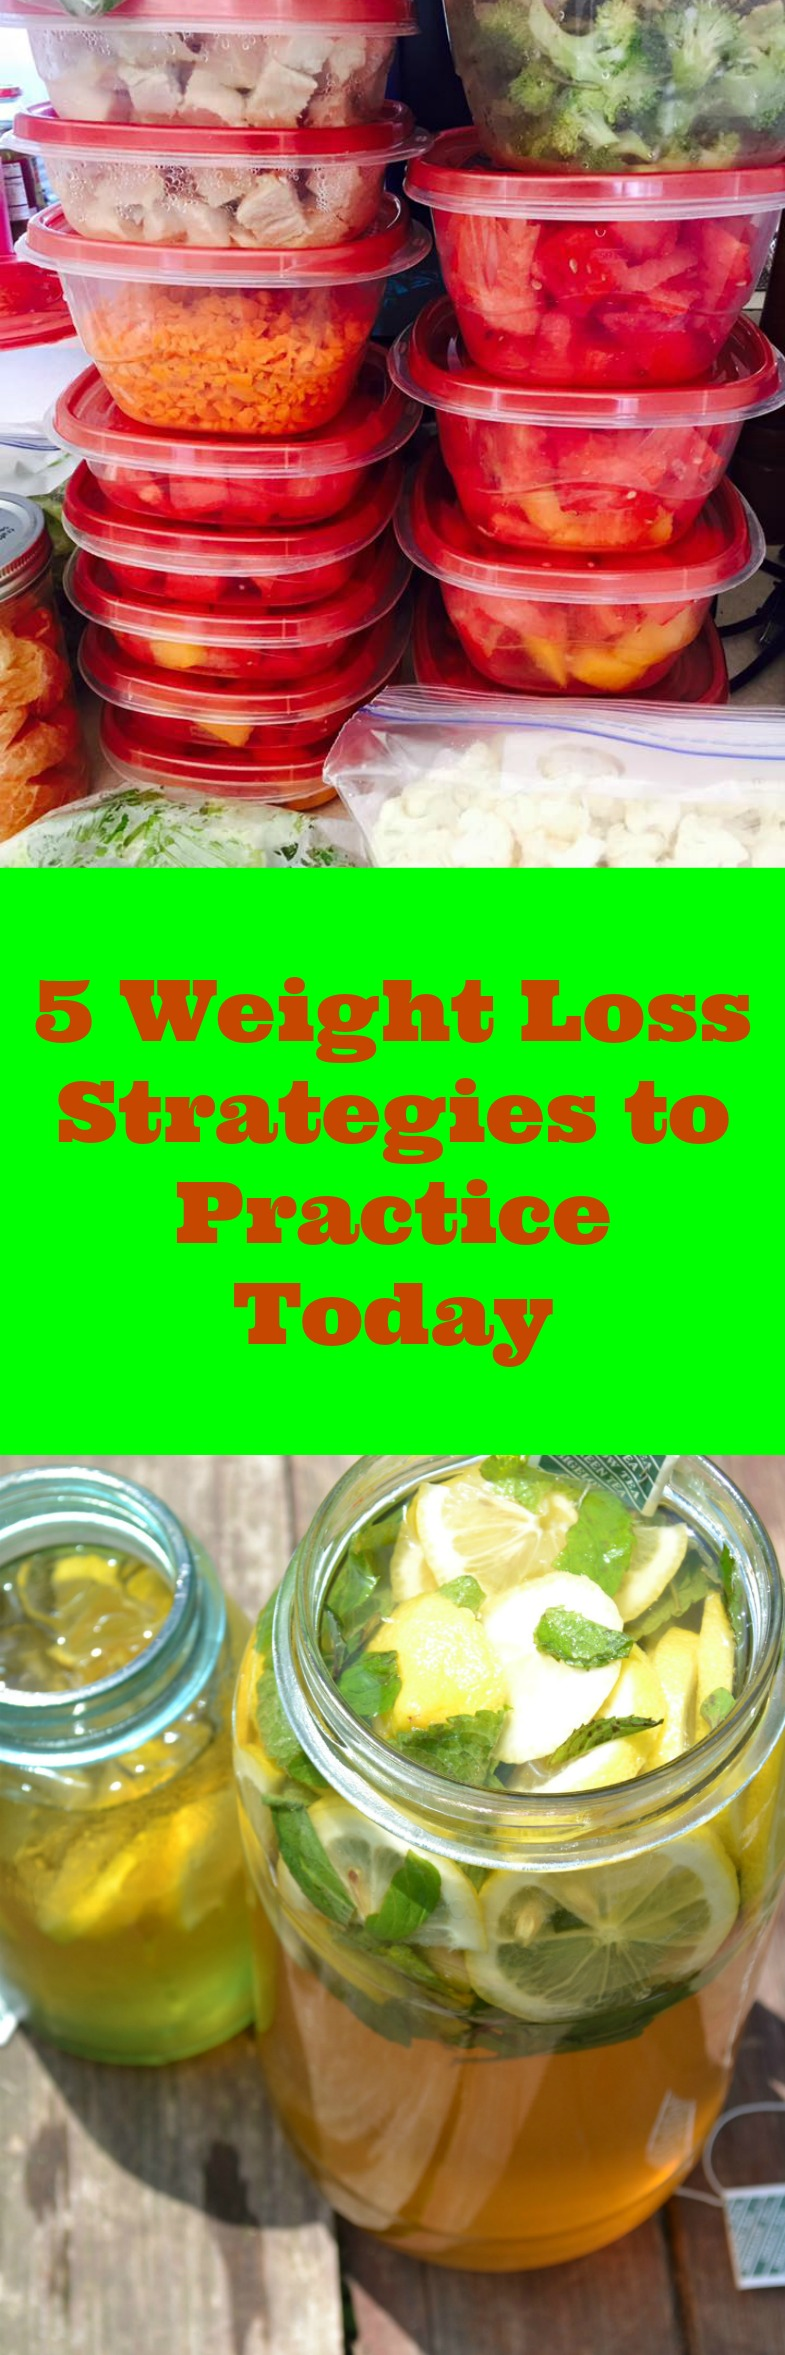 These 5 Weight Loss strategies to practice today will benefit you and your weight loss goals! Start implementing these easy steps for weight loss success.